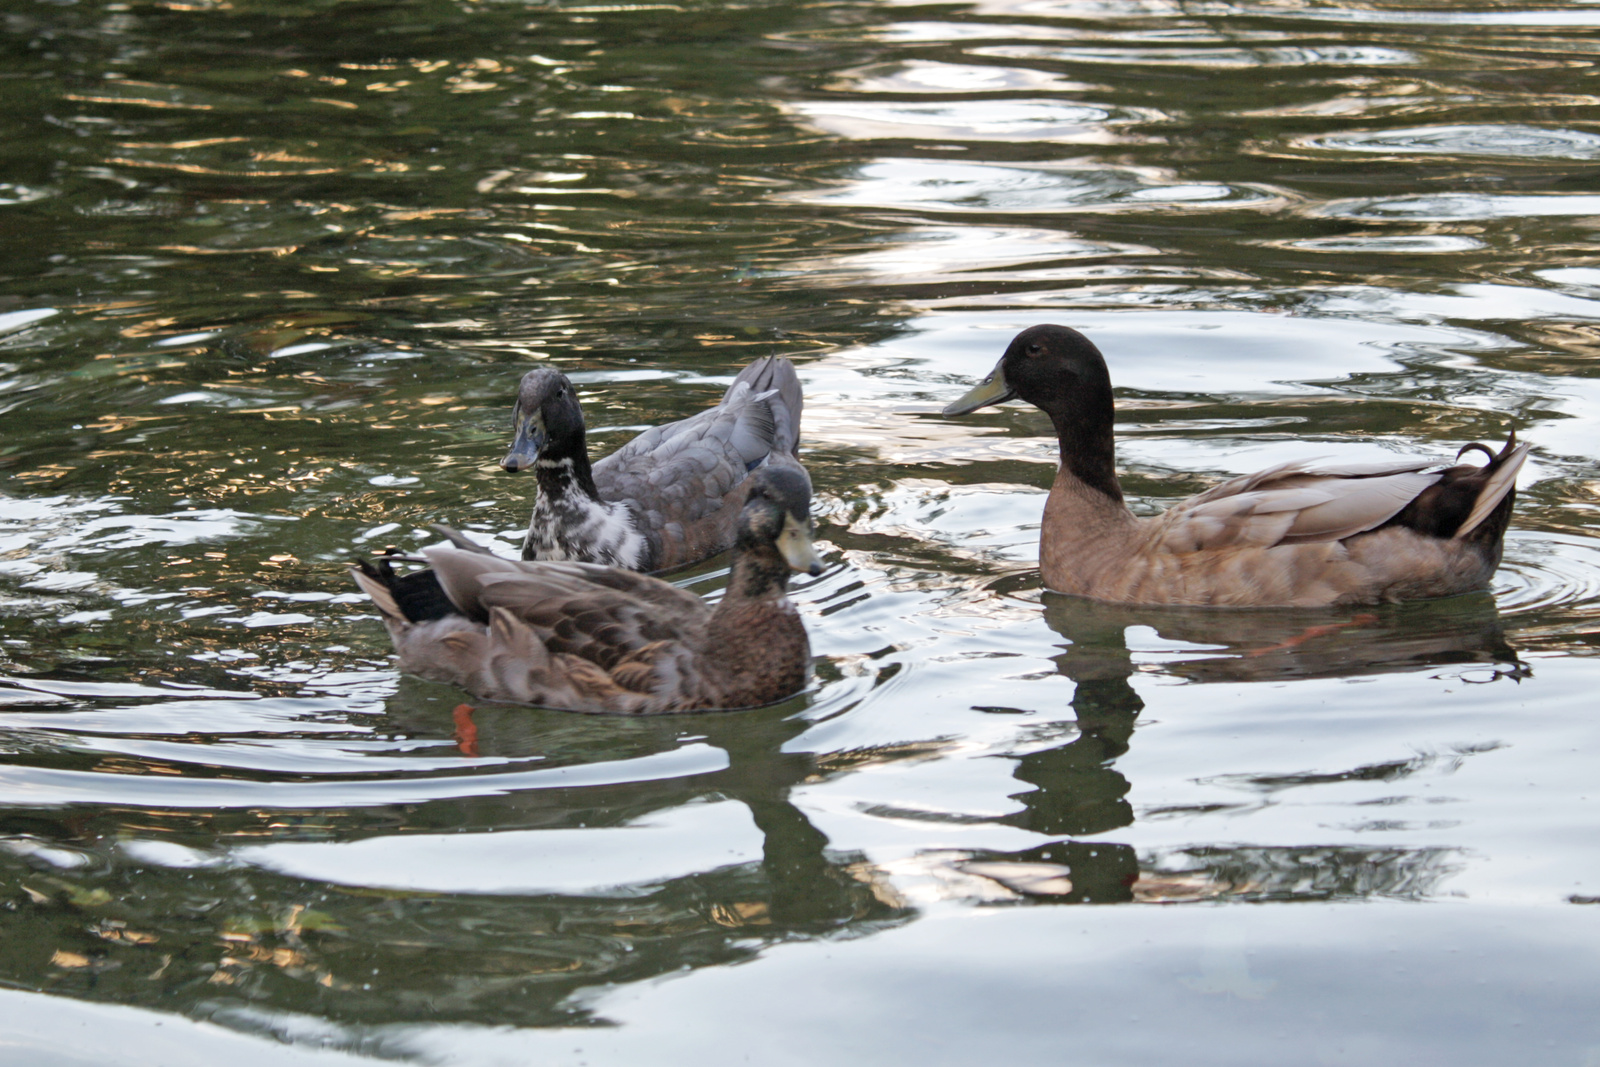 Permanent Mirror Lake ducks removed | The Lantern